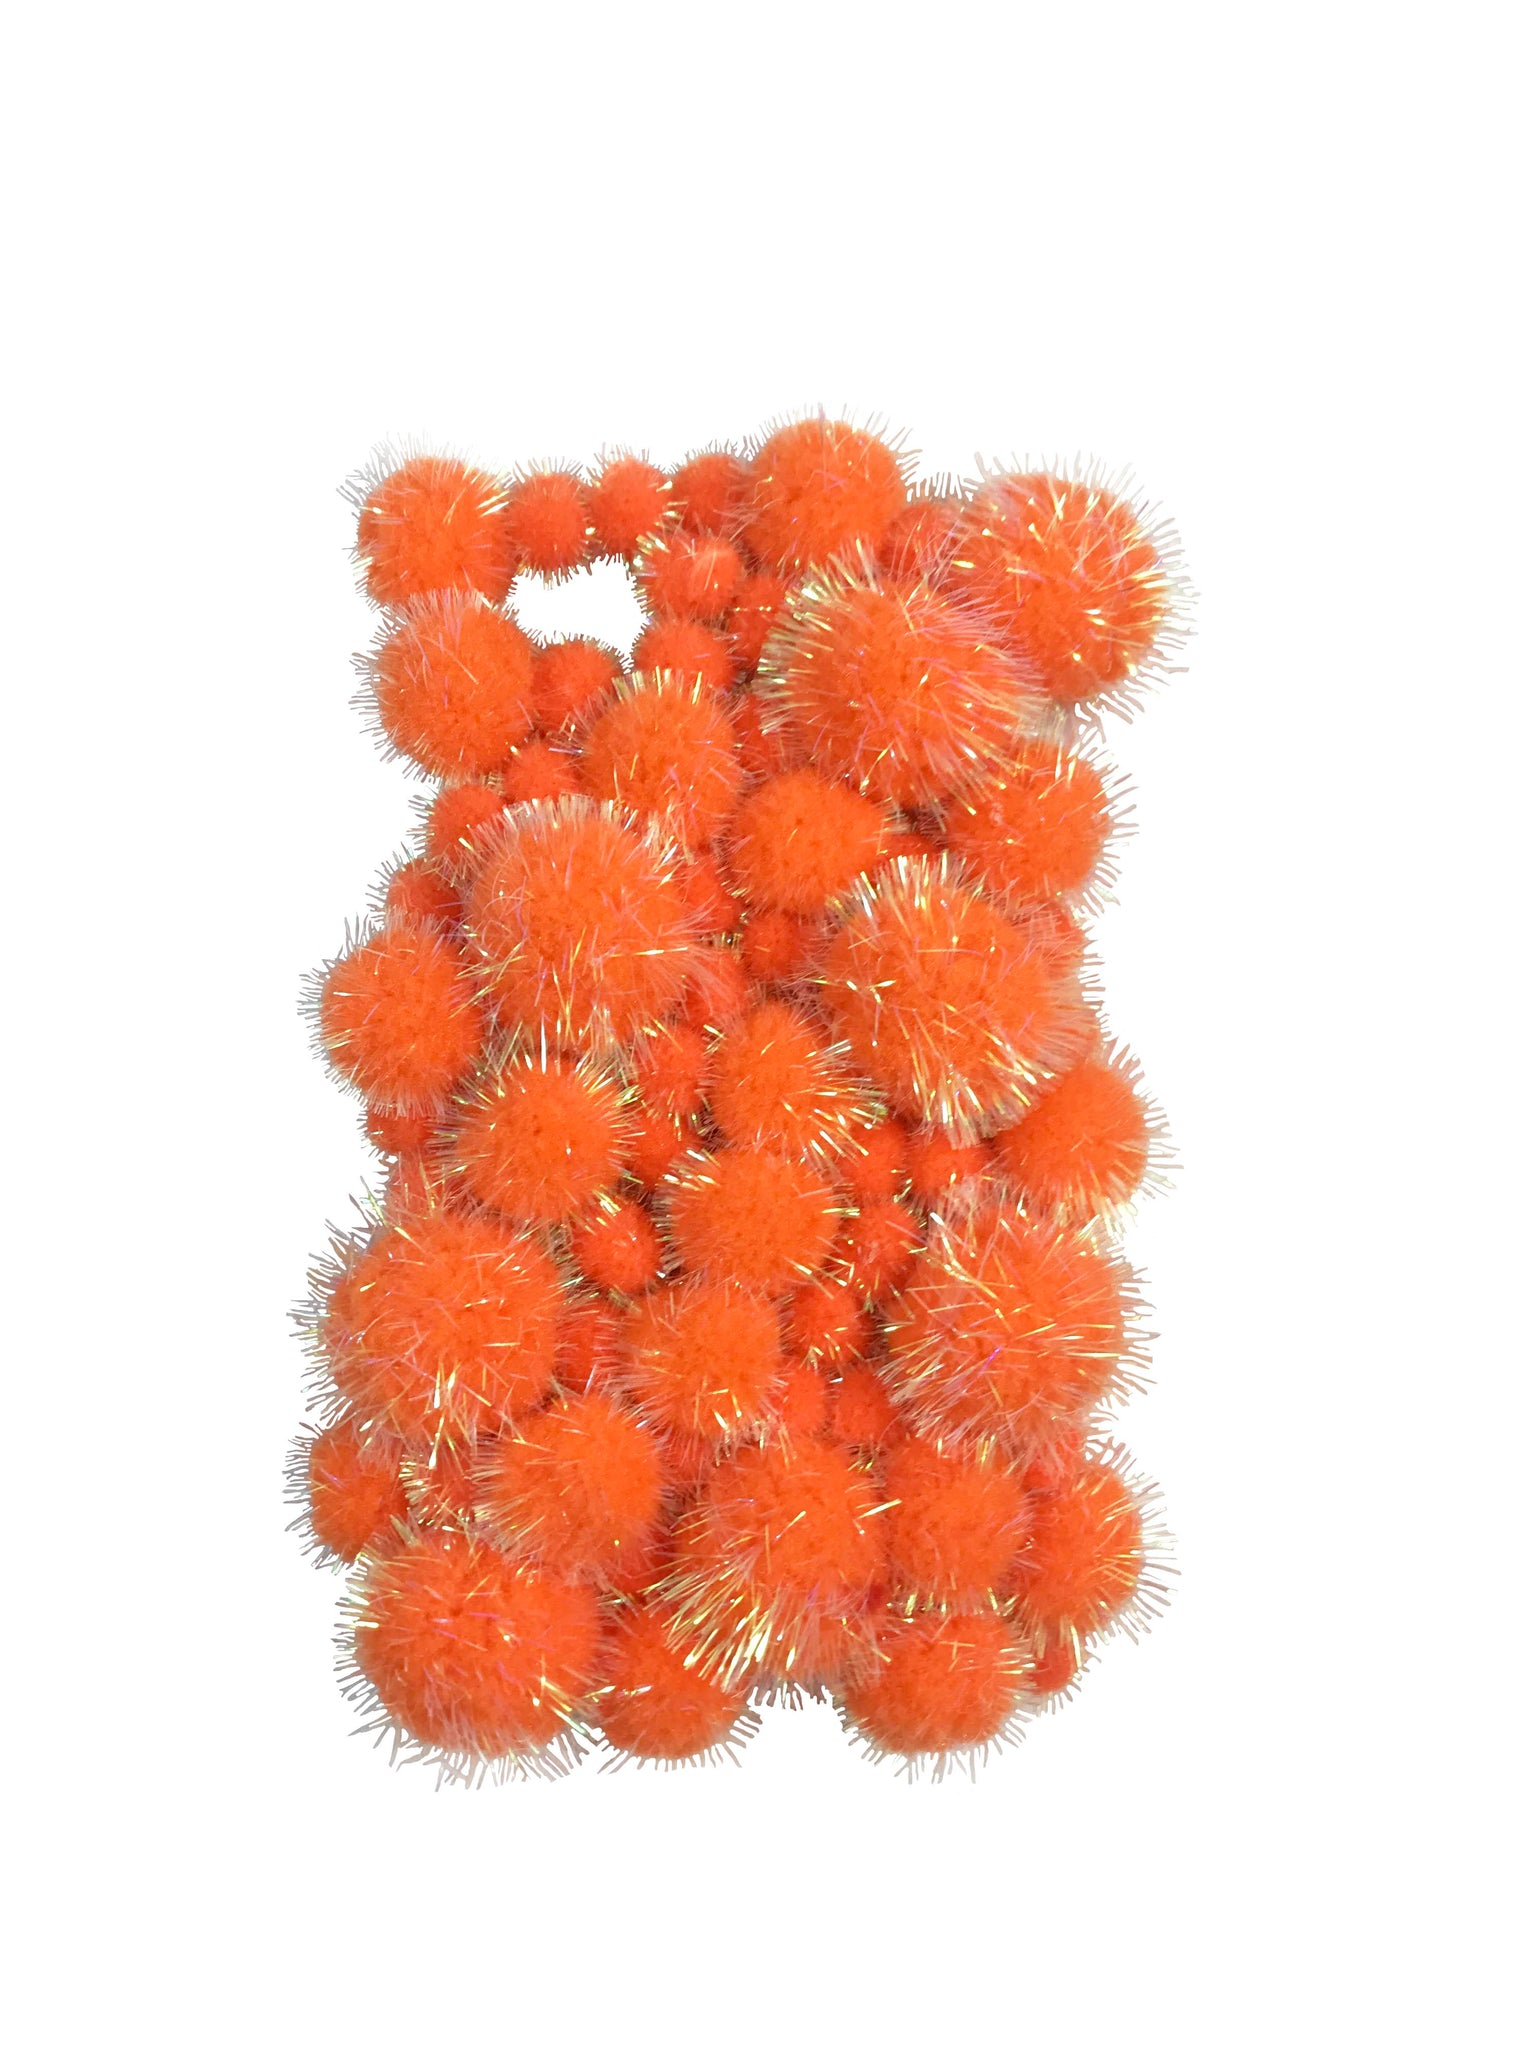 Orange Puff Case